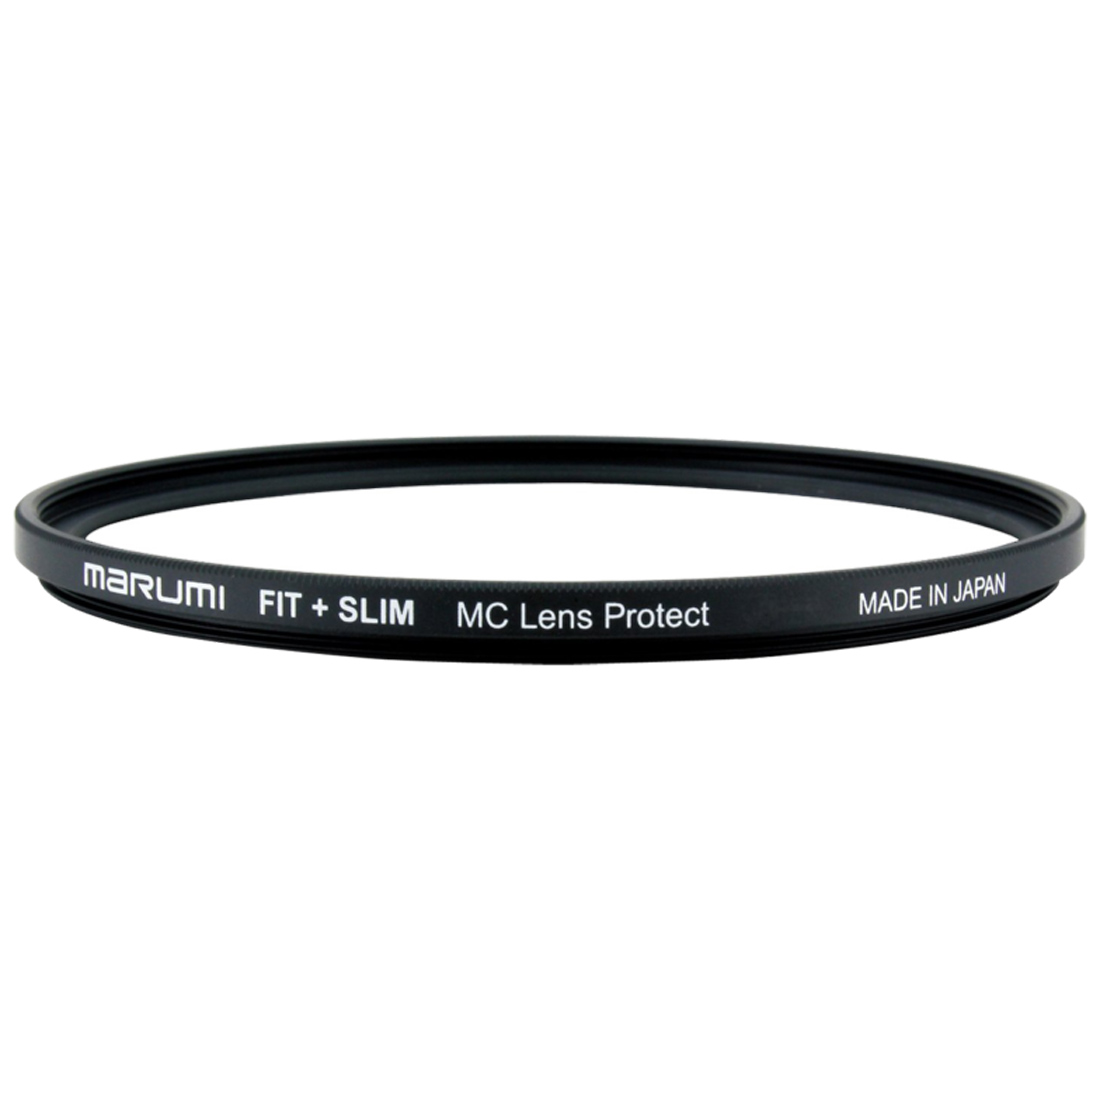 Zaštitni filter Fit+Slim Lens Protect Marumi - 72 mm